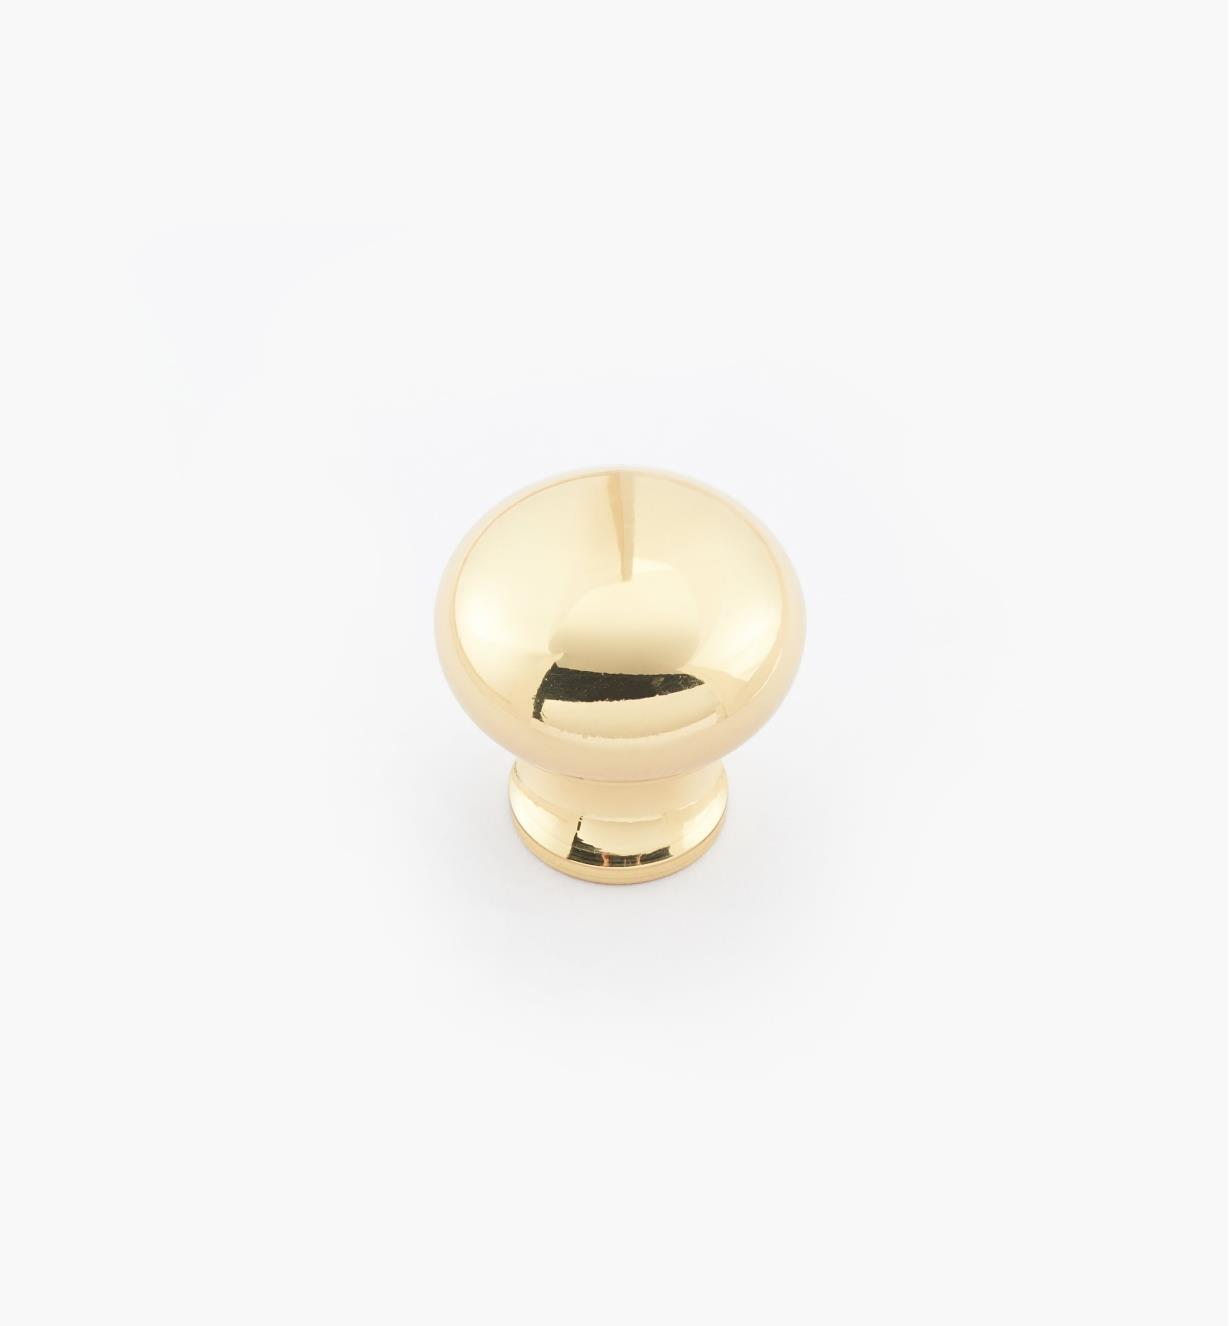 "02W1402 - 3/4"" × 3/4"" Round Brass Knob, Polished Brass"